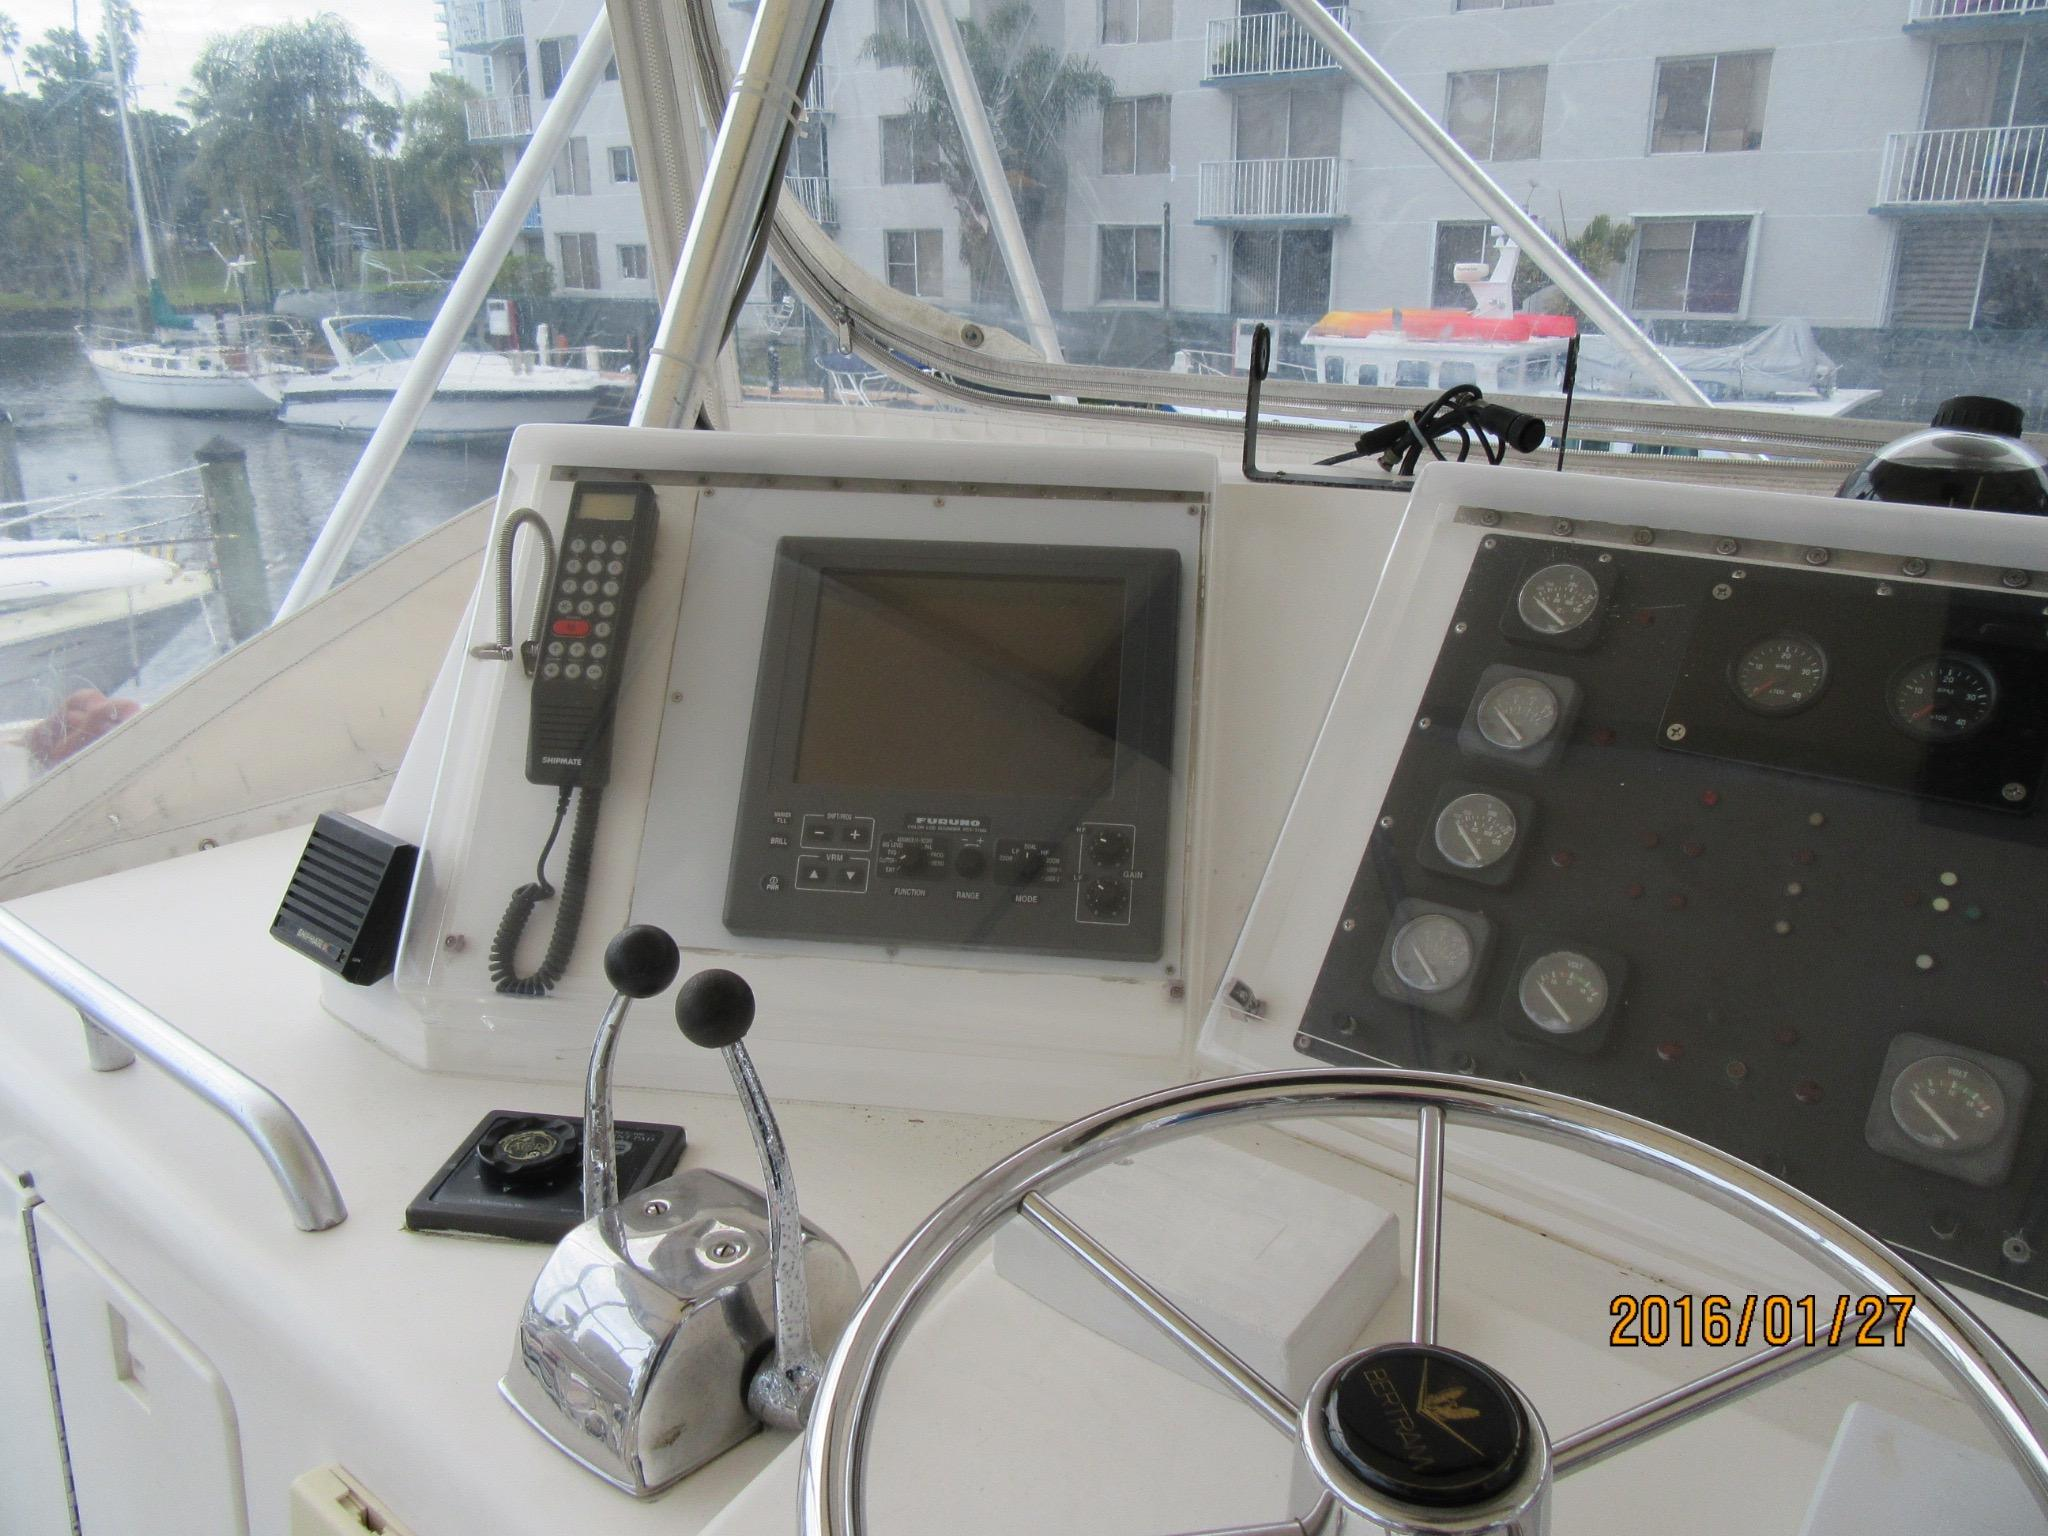 BOW VIEW WITH DINGY ON DAVITS WITH CRANE